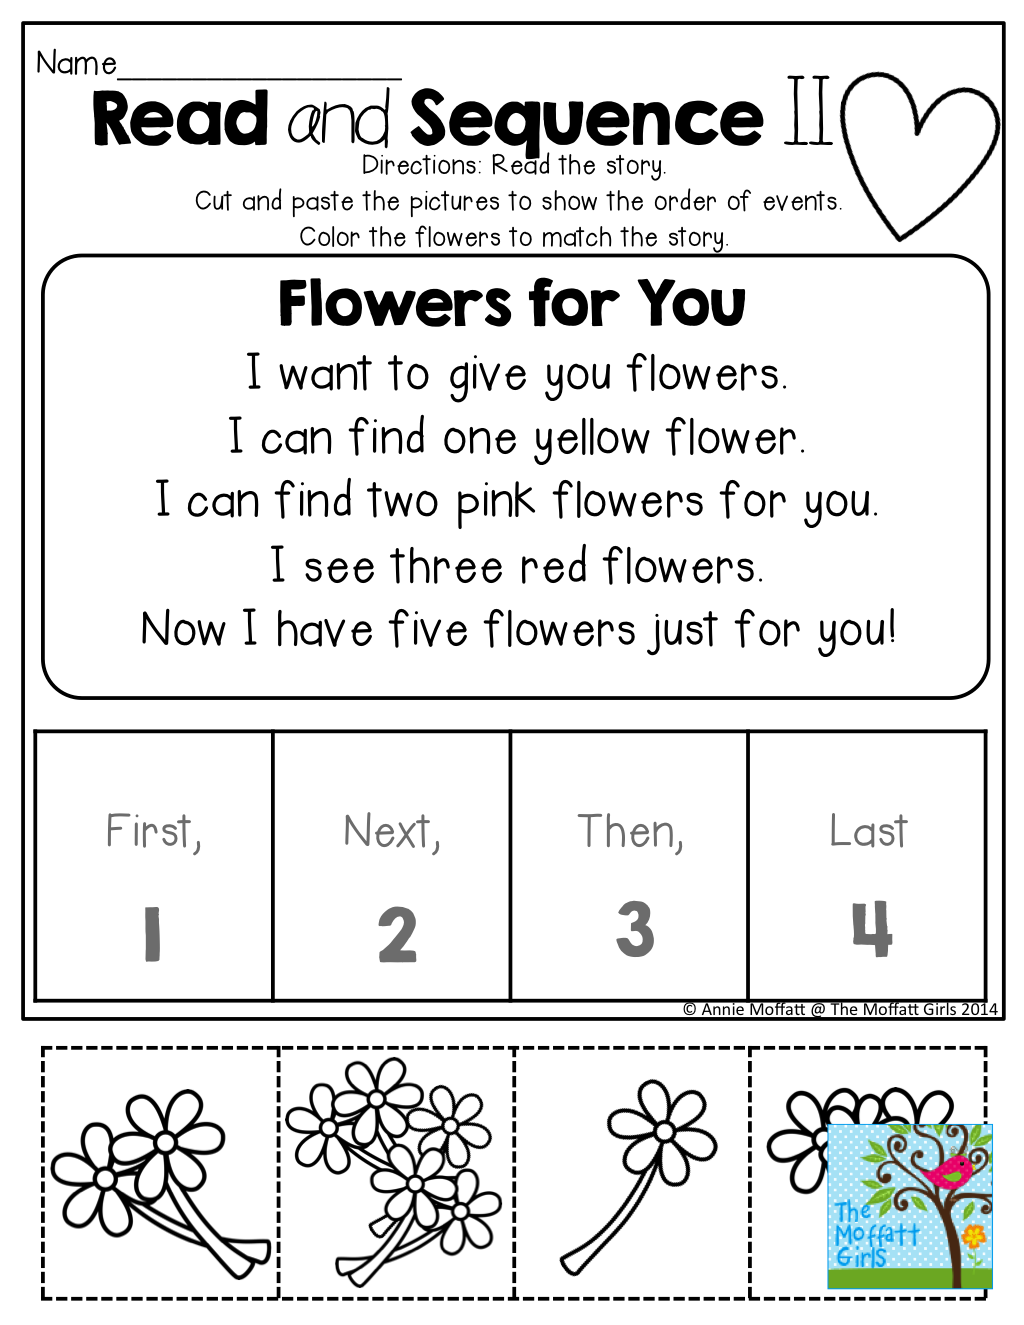 Comprehension Checks Simple Stories With Sight Words And